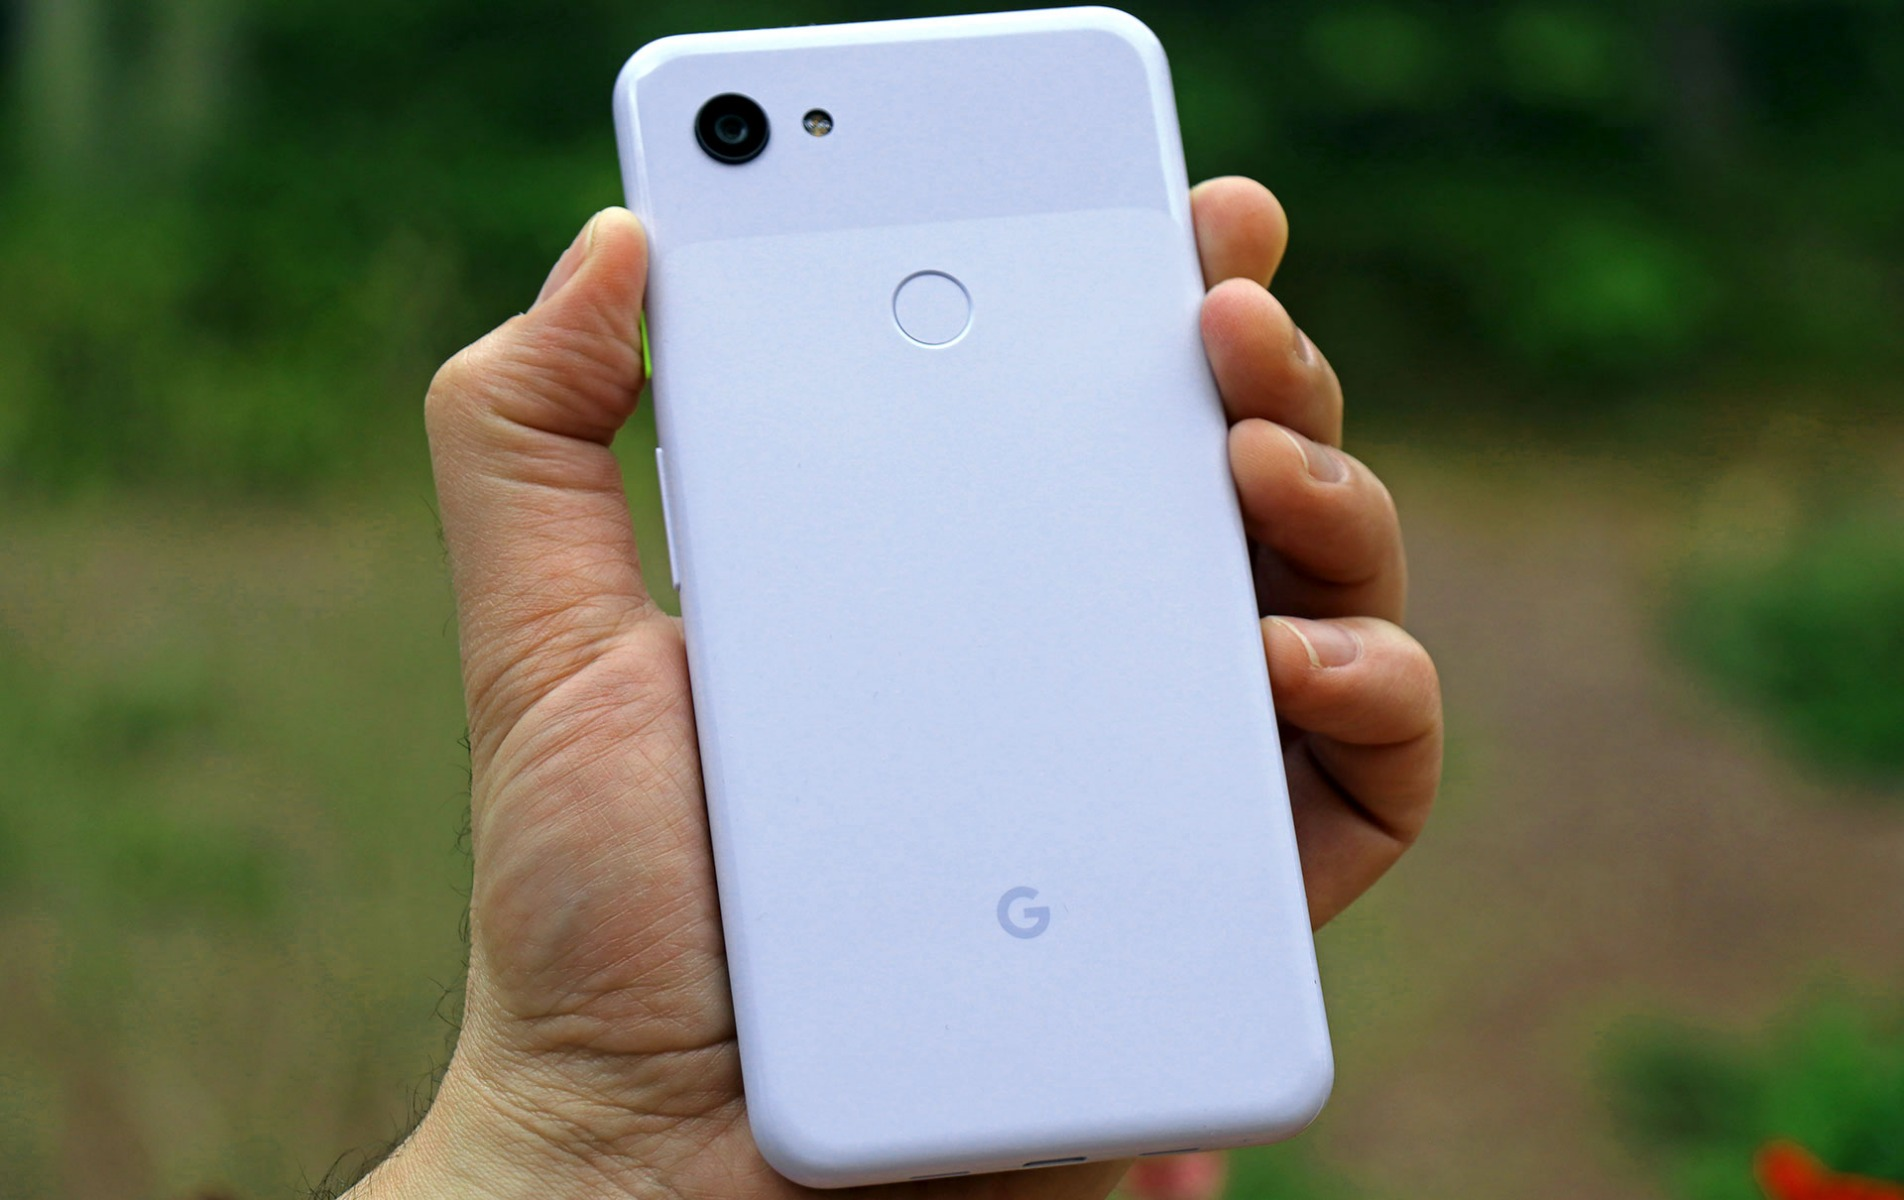 Google Pixel 3a XL Review: Full-Featured, Affordable Pure Android